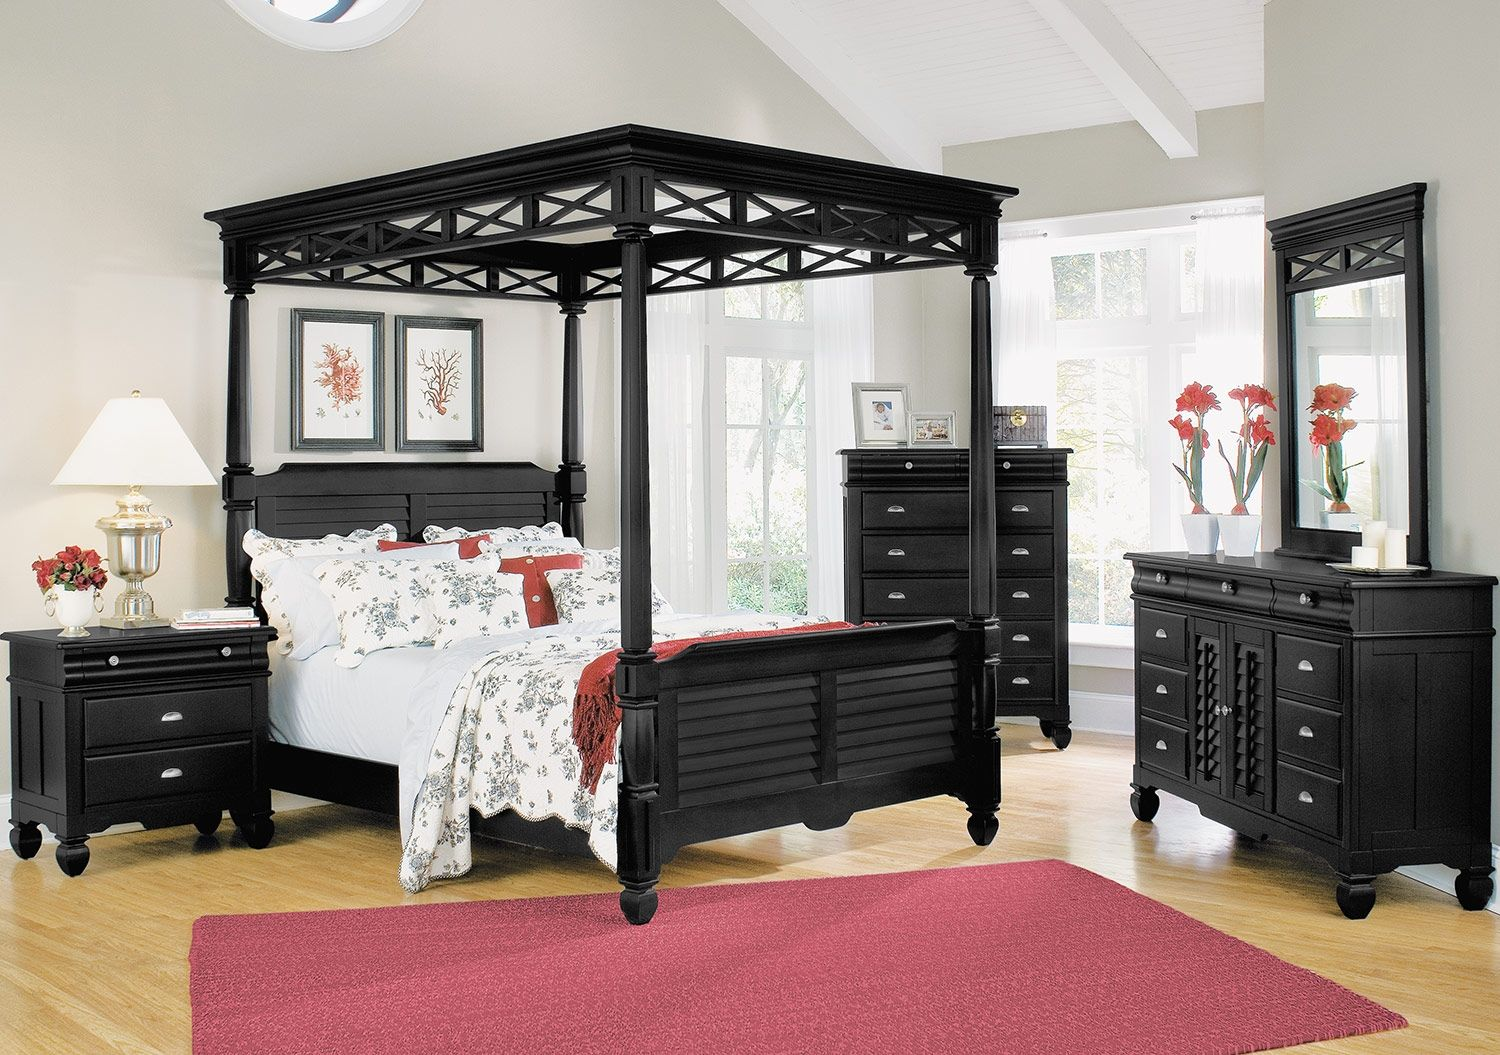 Bedroom Furniture   Plantation Cove Black Canopy Queen Bed. Bedroom Furniture   Plantation Cove Black Canopy Queen Bed